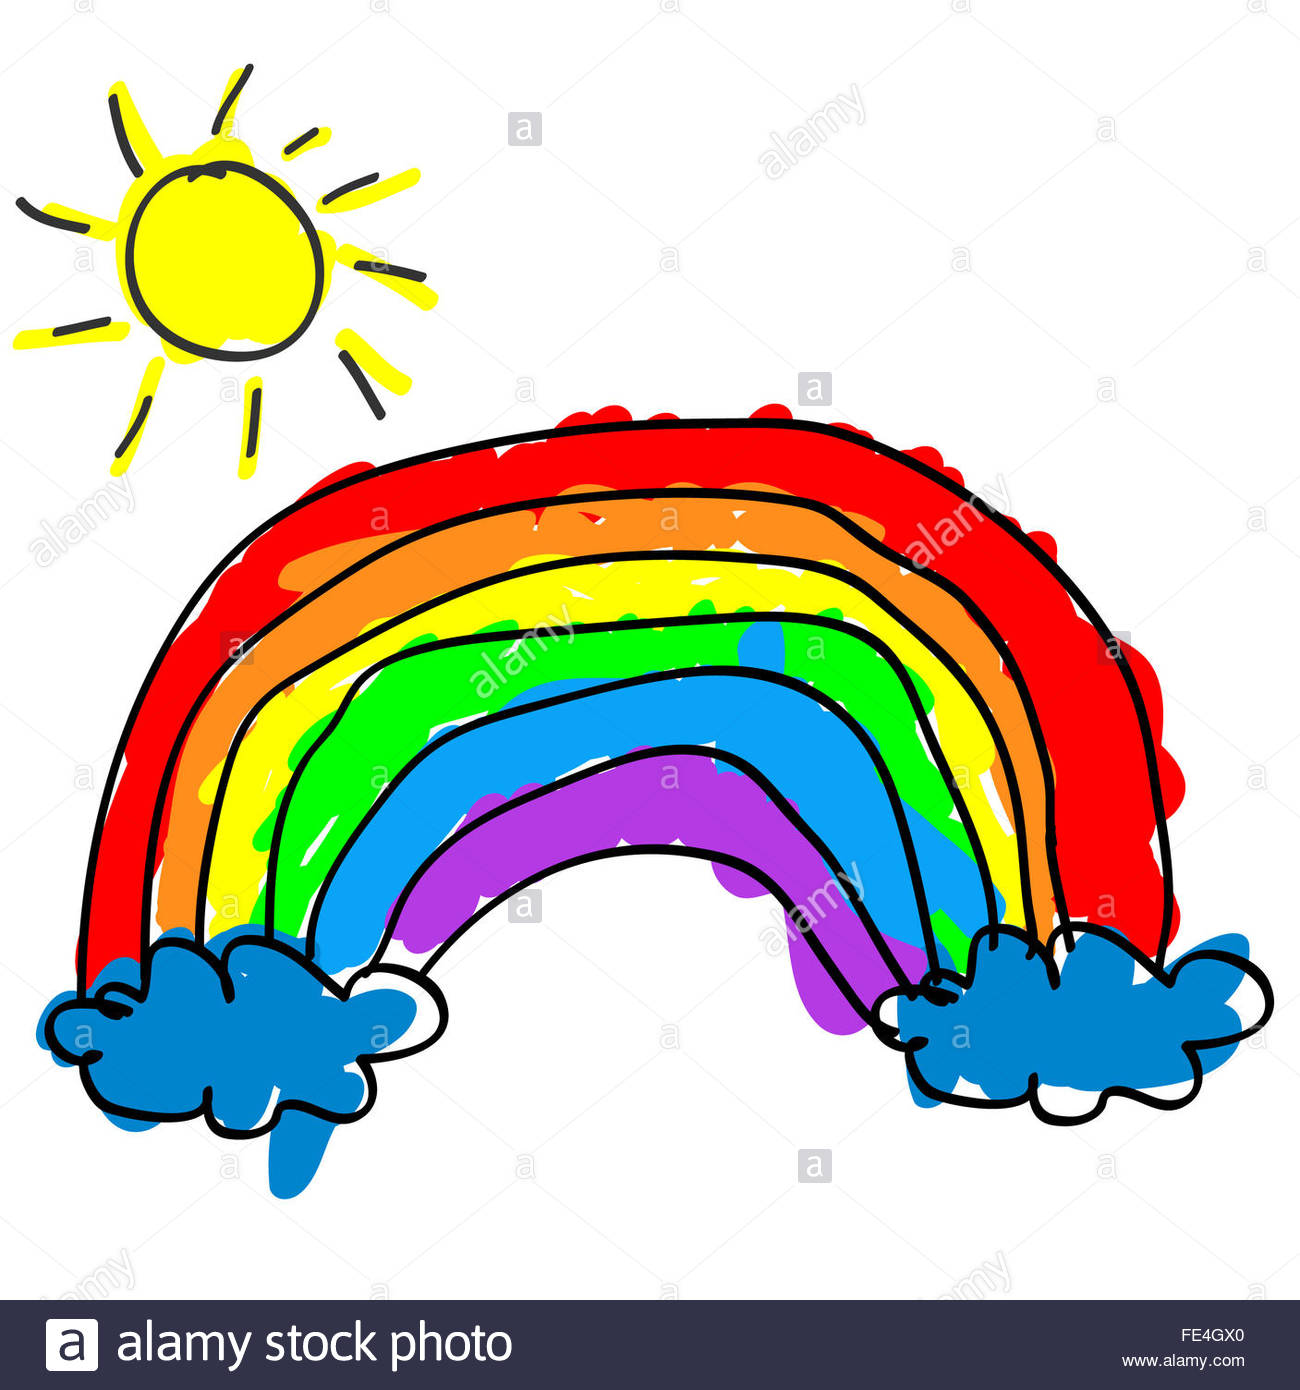 1300x1390 Childlike Cute Rainbow With Color Outside The Outline Like A Kid'S